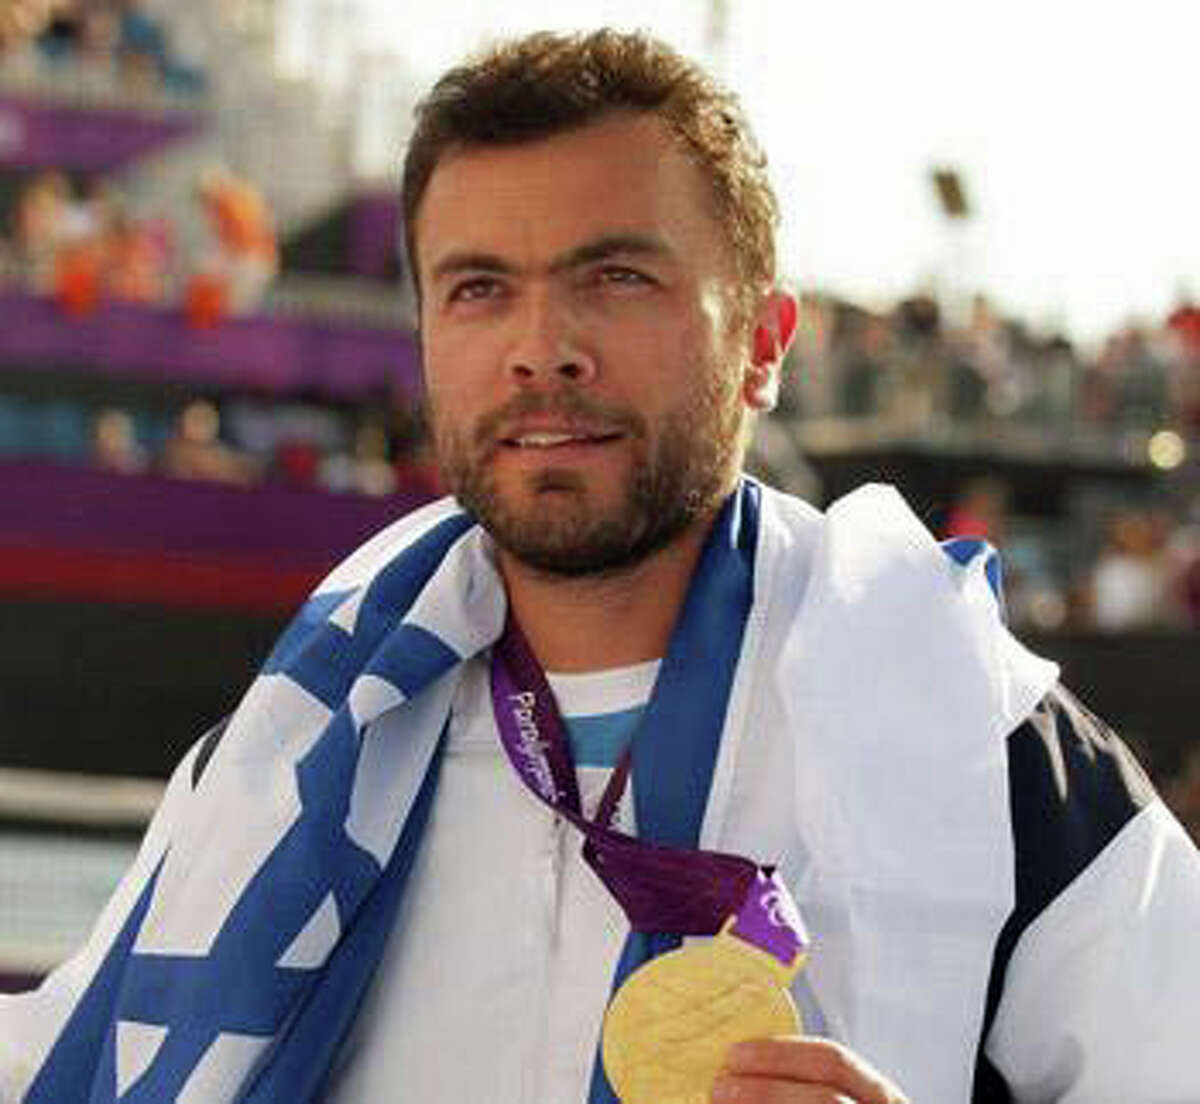 Paralympic Gold Medalist Pilot Noam Gershoni will speak at 7 p.m. Tuesday at the Temple Sholom, 300 East Putnam Ave. To RSVP, call 203-869-7191 or visit www.templesholom.com. For more information, call Alice Schoen at 203-542-7165 or email her at alice.schoen@templesholom.com.